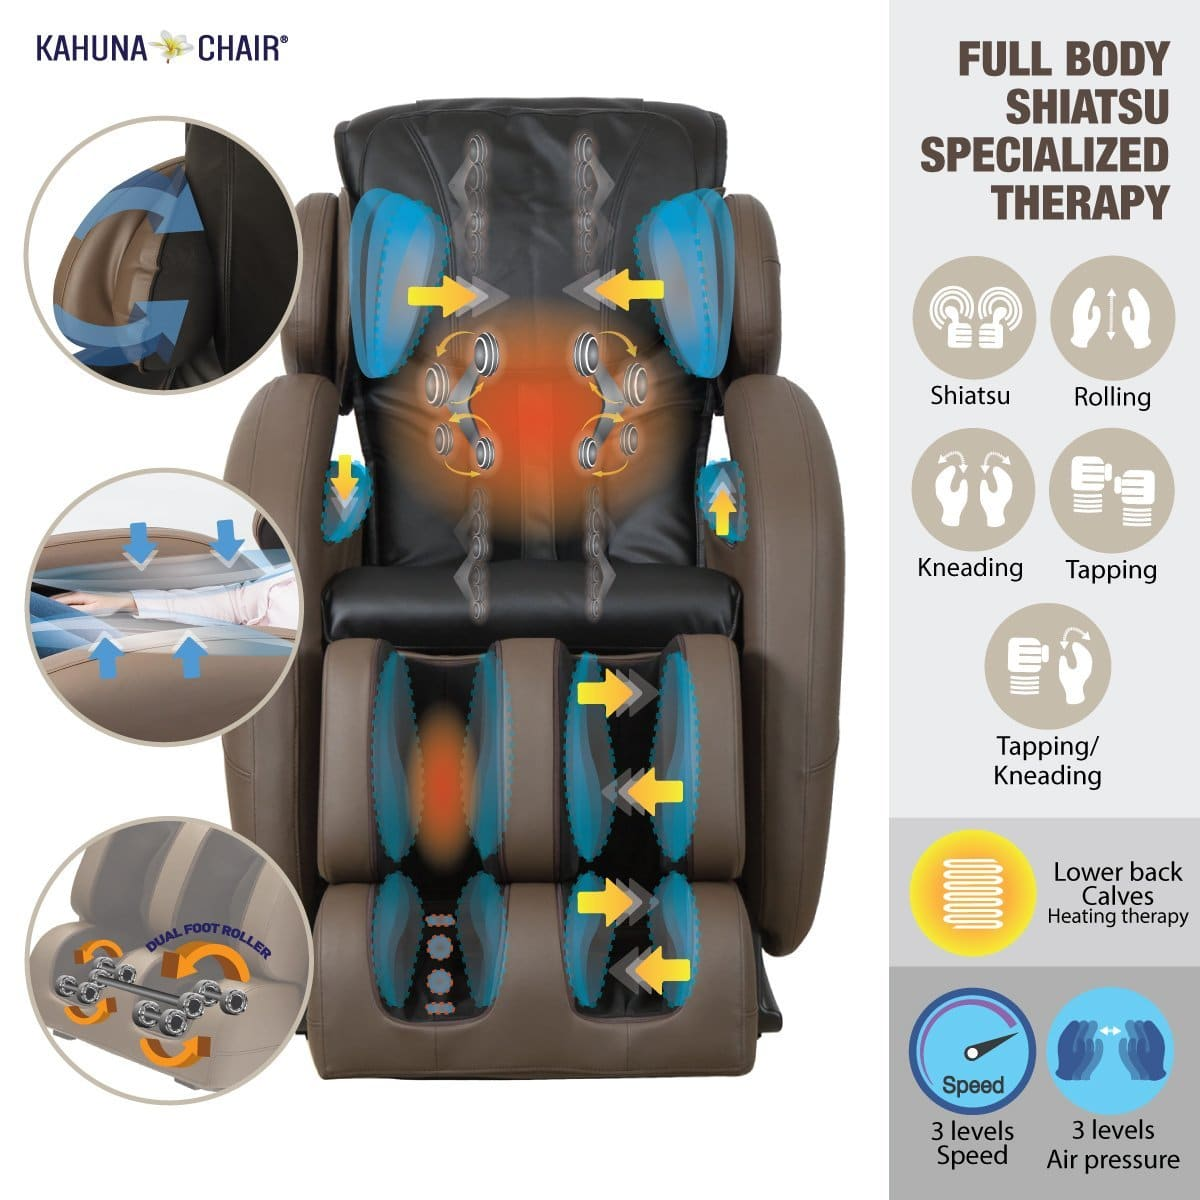 Space-Saving Zero-Gravity Full-Body kahuna LM6800 massage chair For Sale